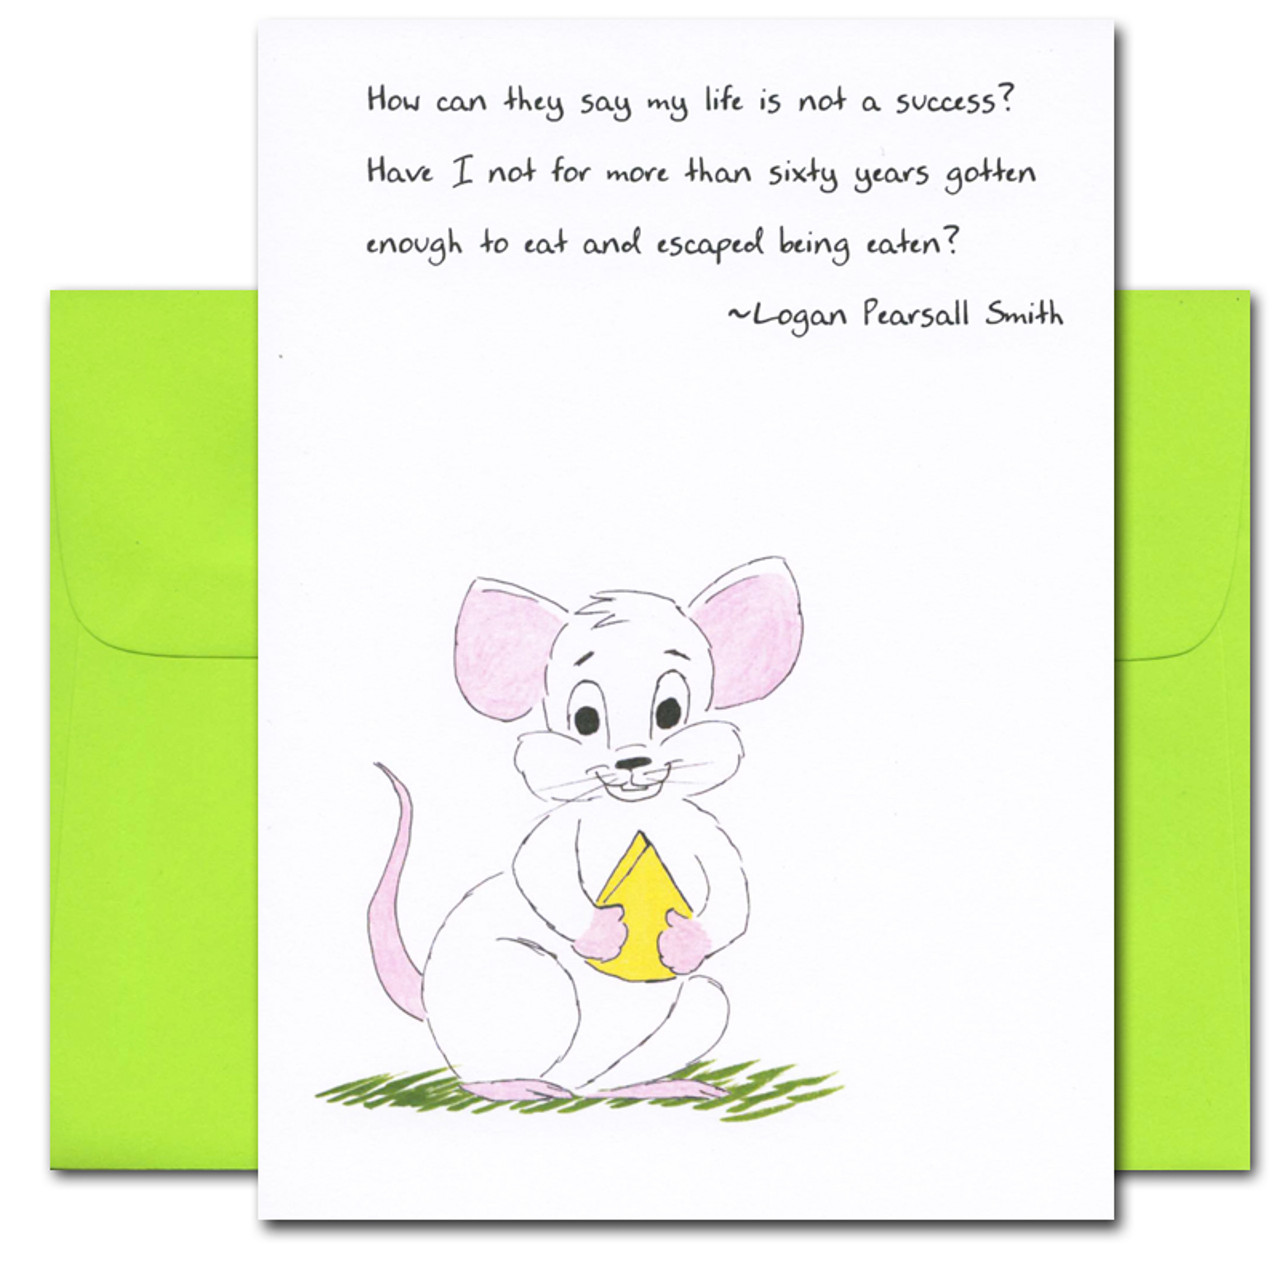 """Quotation Card """"Success: Smith"""" Cover shows a hand-drawn mouse holding a wedge of cheese with a quote by Logan Pearsall Smith that reads: """"How can they say my life is not a success? Have I not for more than sixty years gotten enough to eat and escaped being eaten?"""""""